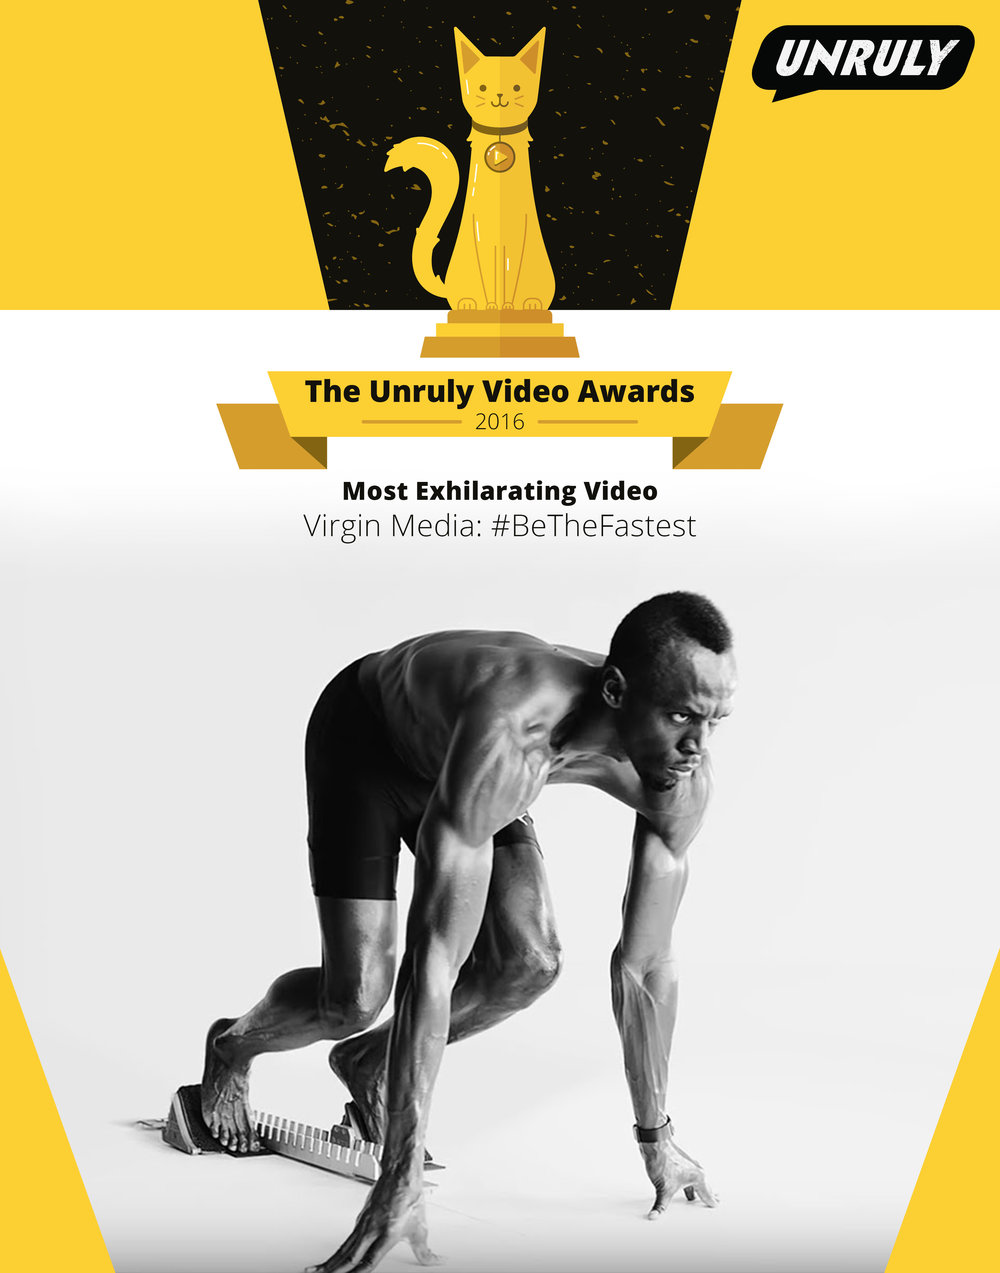 Unruly Video Awards_Physical Award_Virgin Media.jpg